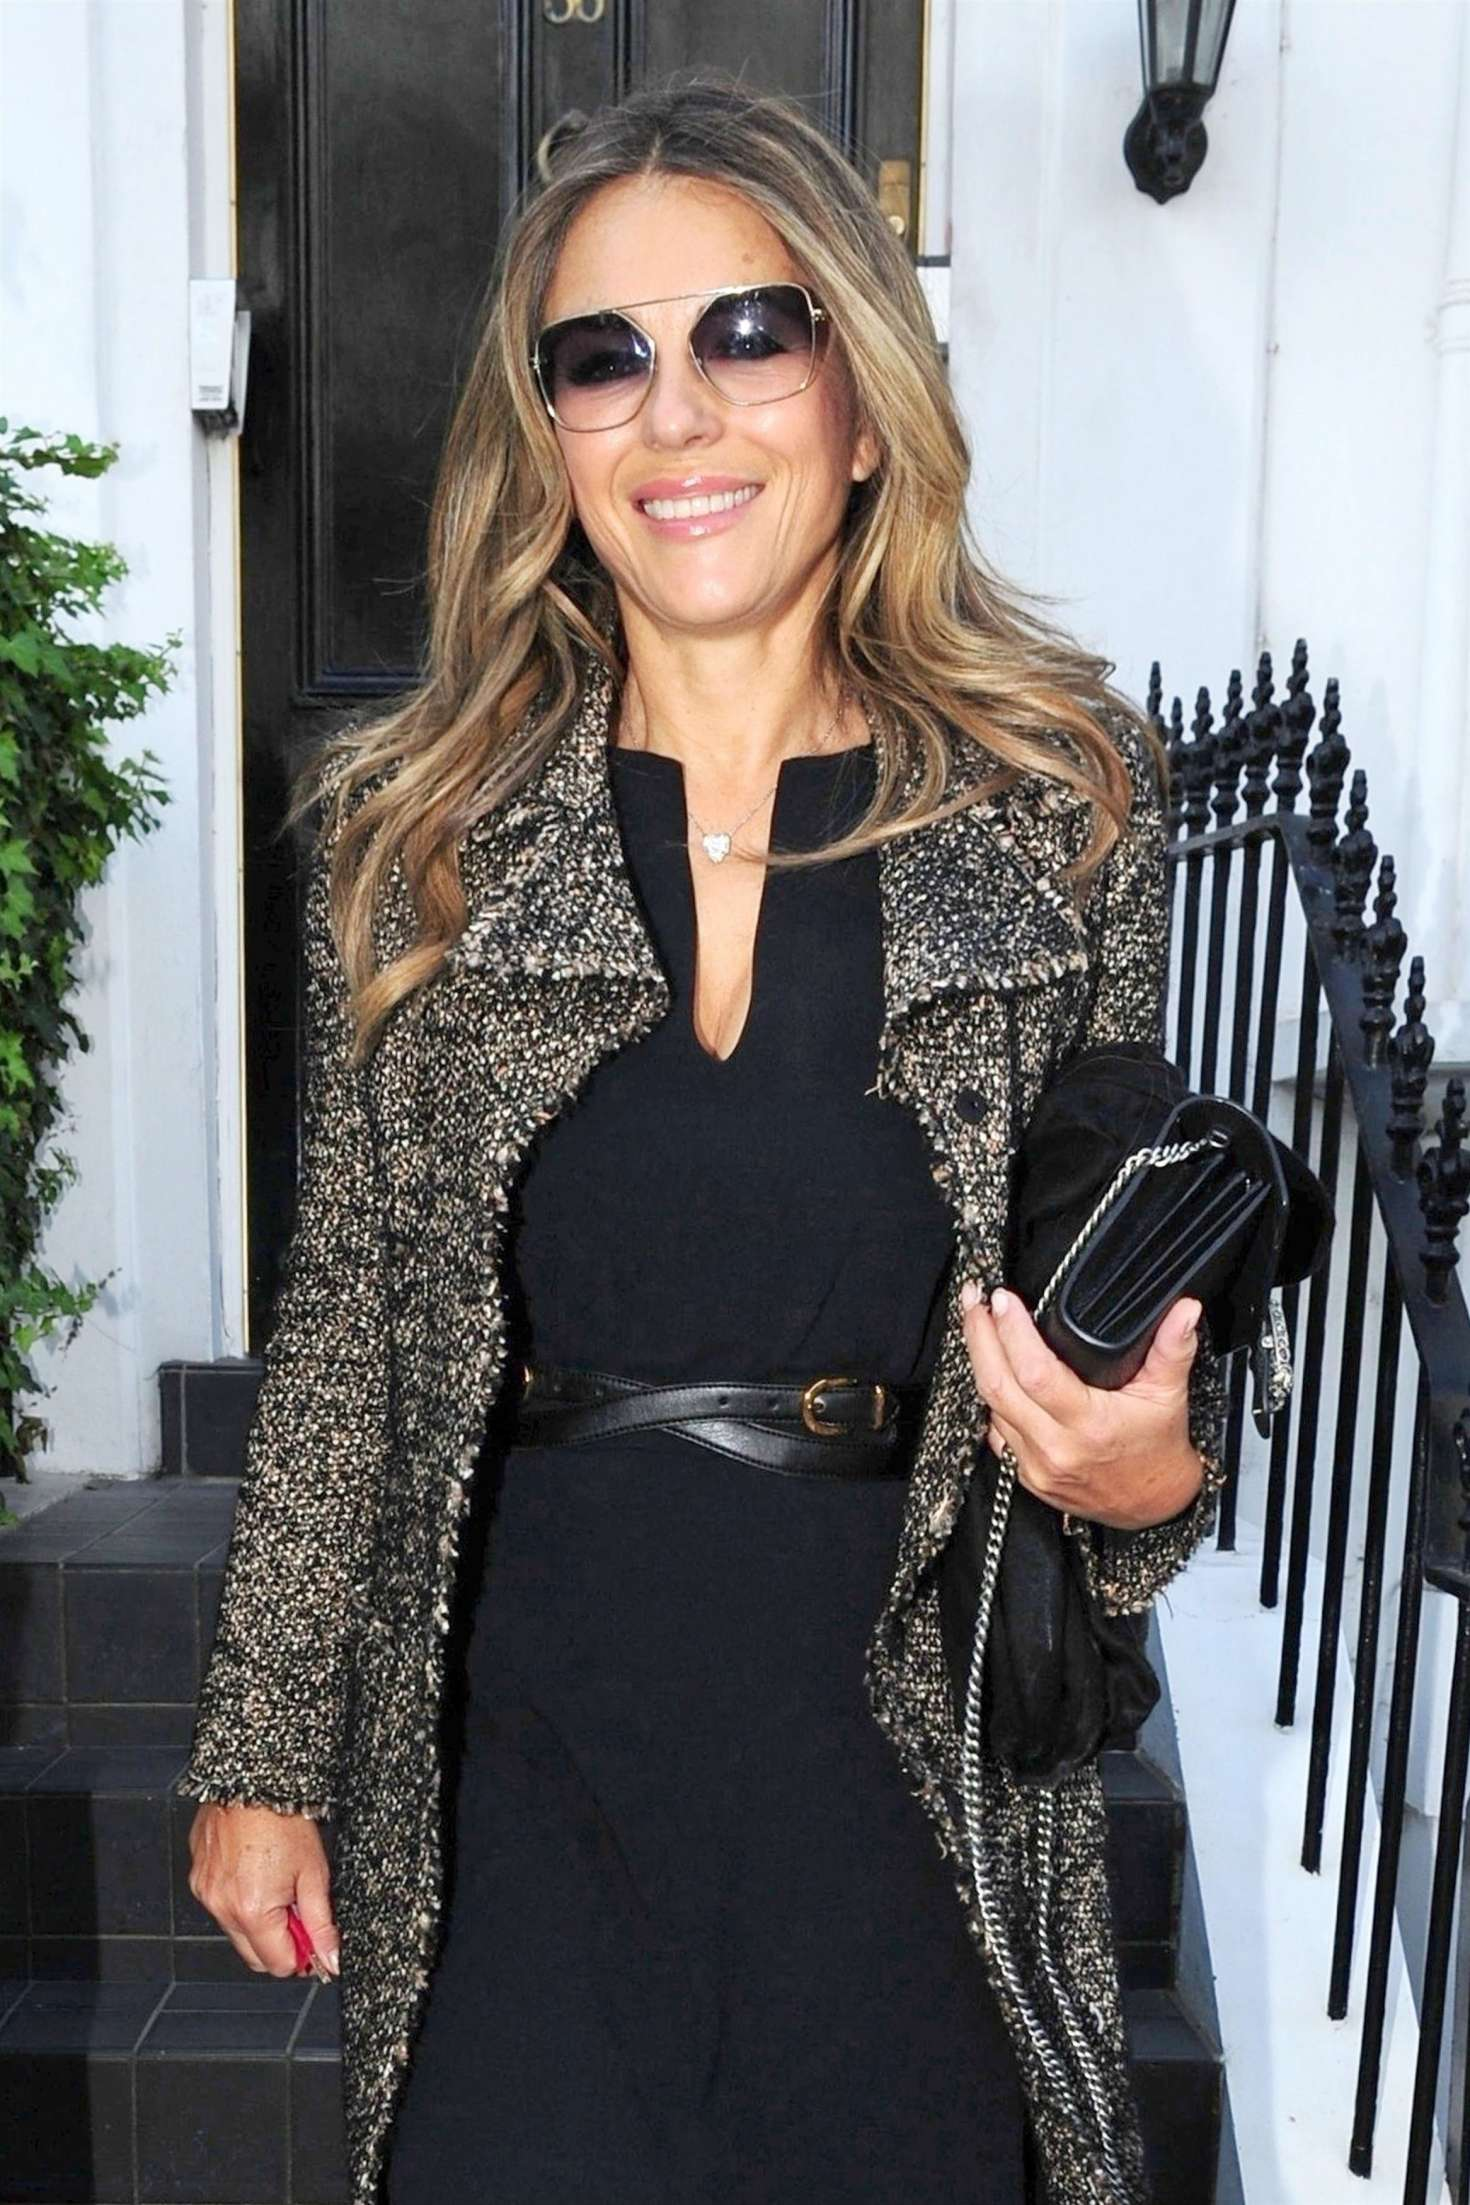 Elizabeth Hurley - Leaving her house and heading to Loulou's restaurant in Mayfair